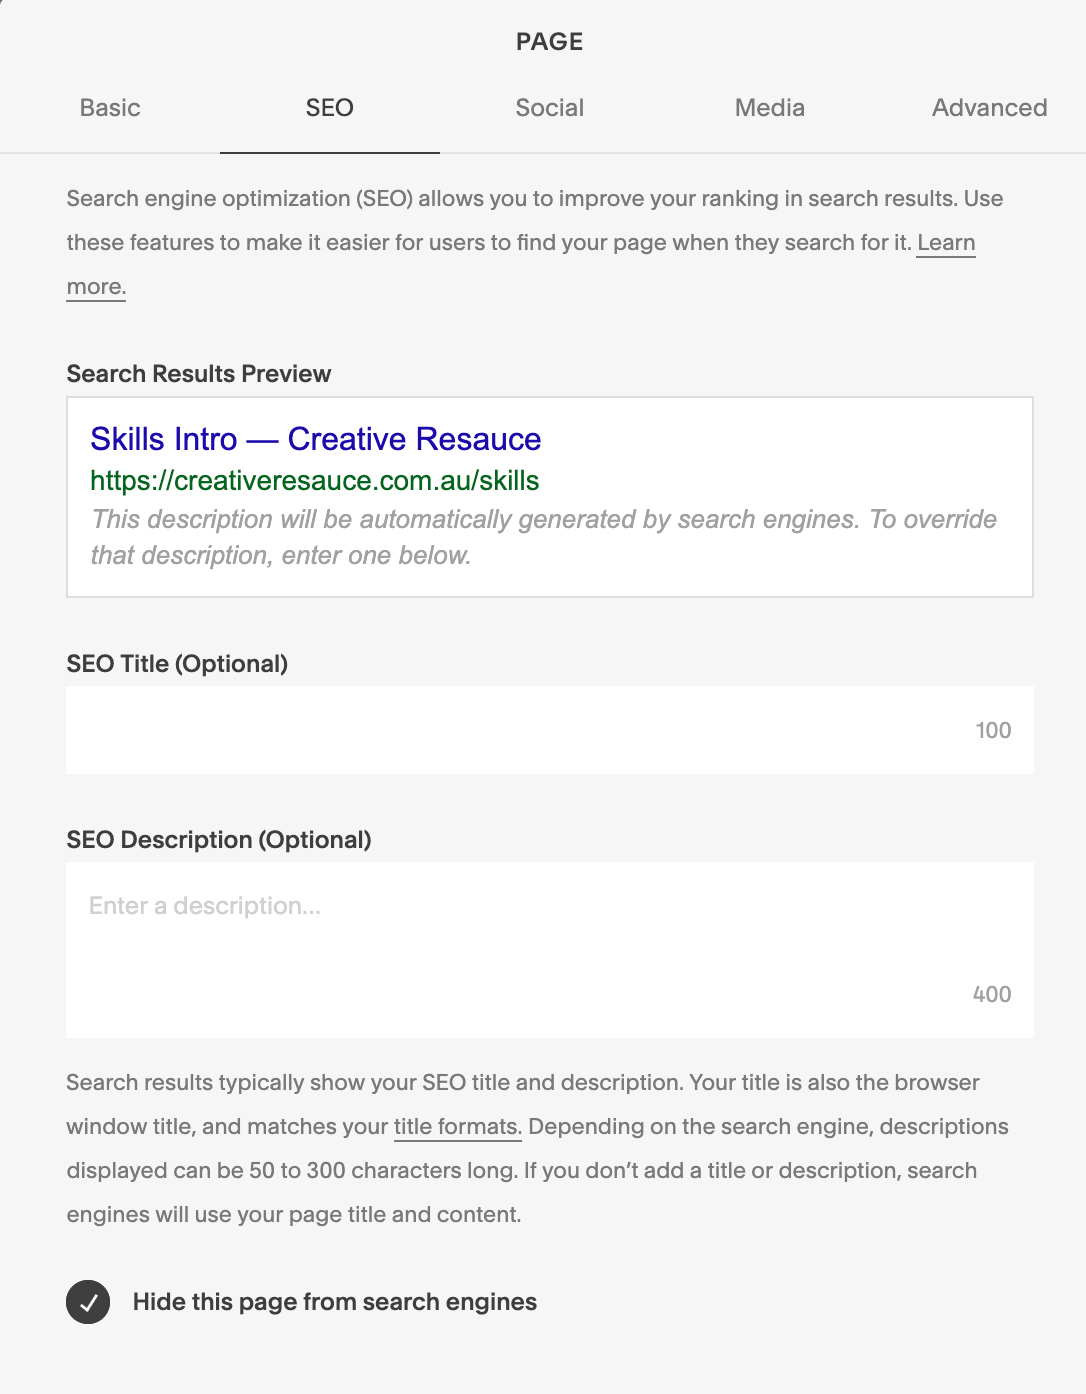 GET THE BASICS OF SQUARESPACE SEO SET UP RIGHT IN 2019